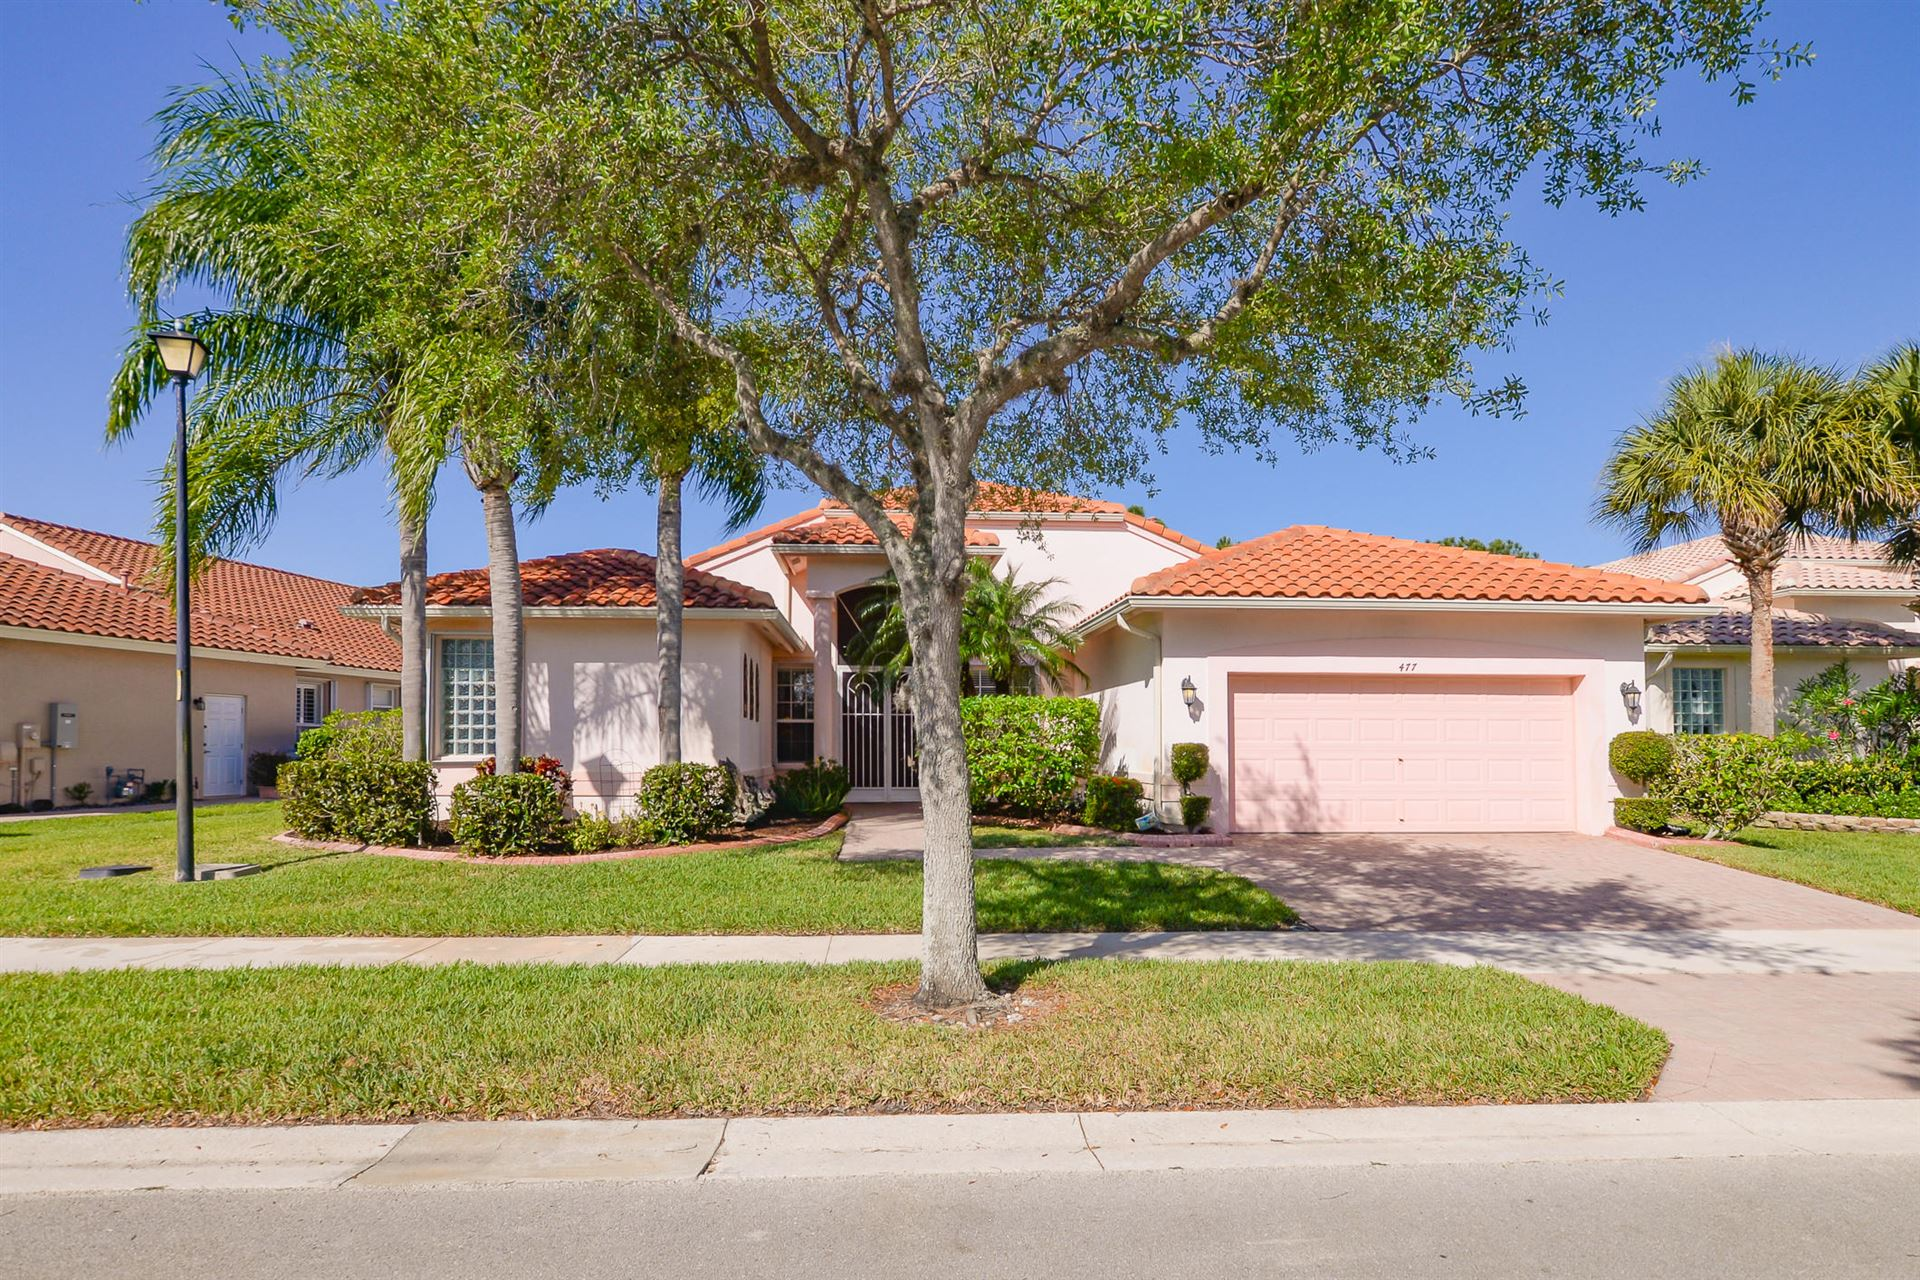 Photo of 477 NW Blue Lake Drive, Port Saint Lucie, FL 34986 (MLS # RX-10705305)